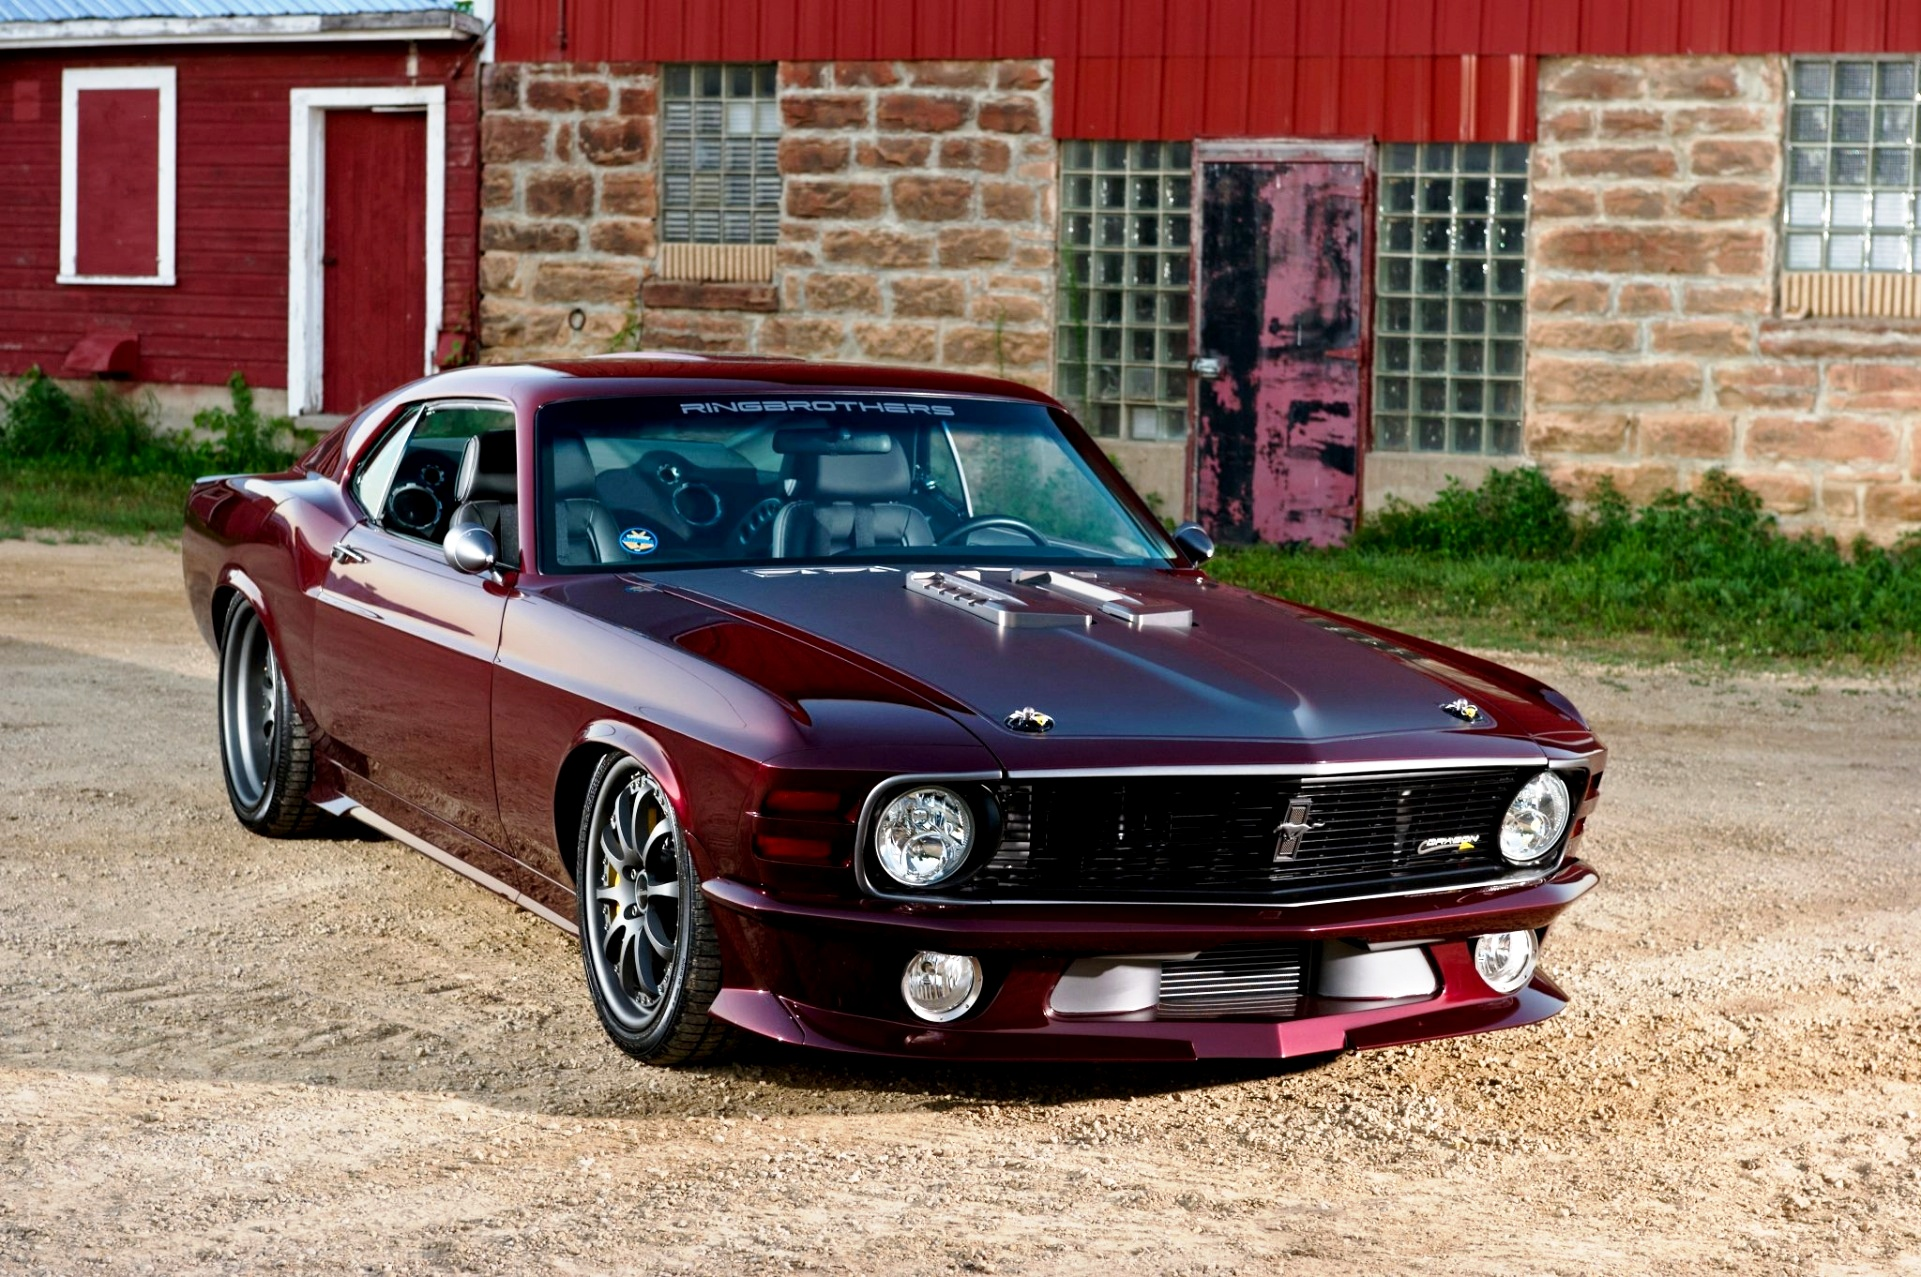 1970 Ford Mustang by ThexRealxBanks on DeviantArt